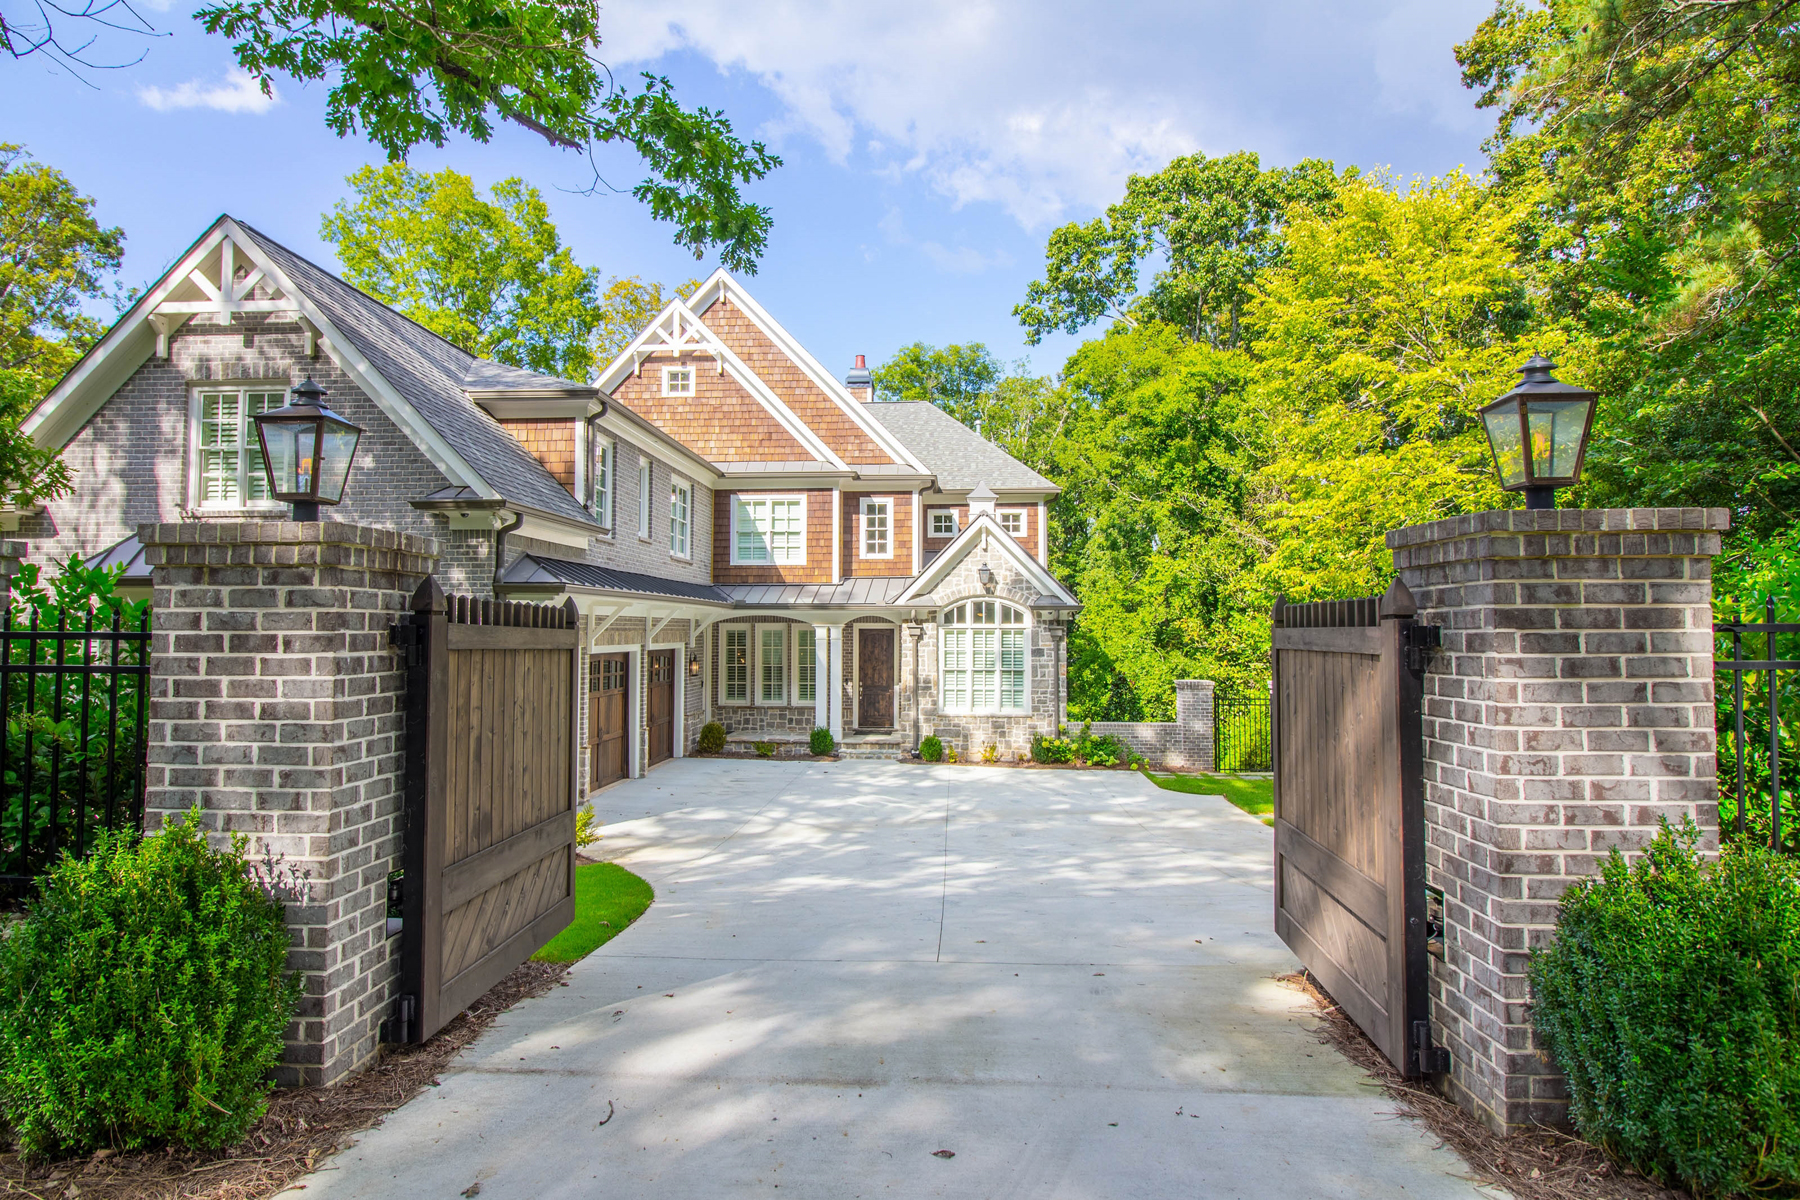 Single Family Home for Sale at Superior Construction With Full Automation Throughout 1685 Mount Paran Road NW Atlanta, Georgia, 30327 United States